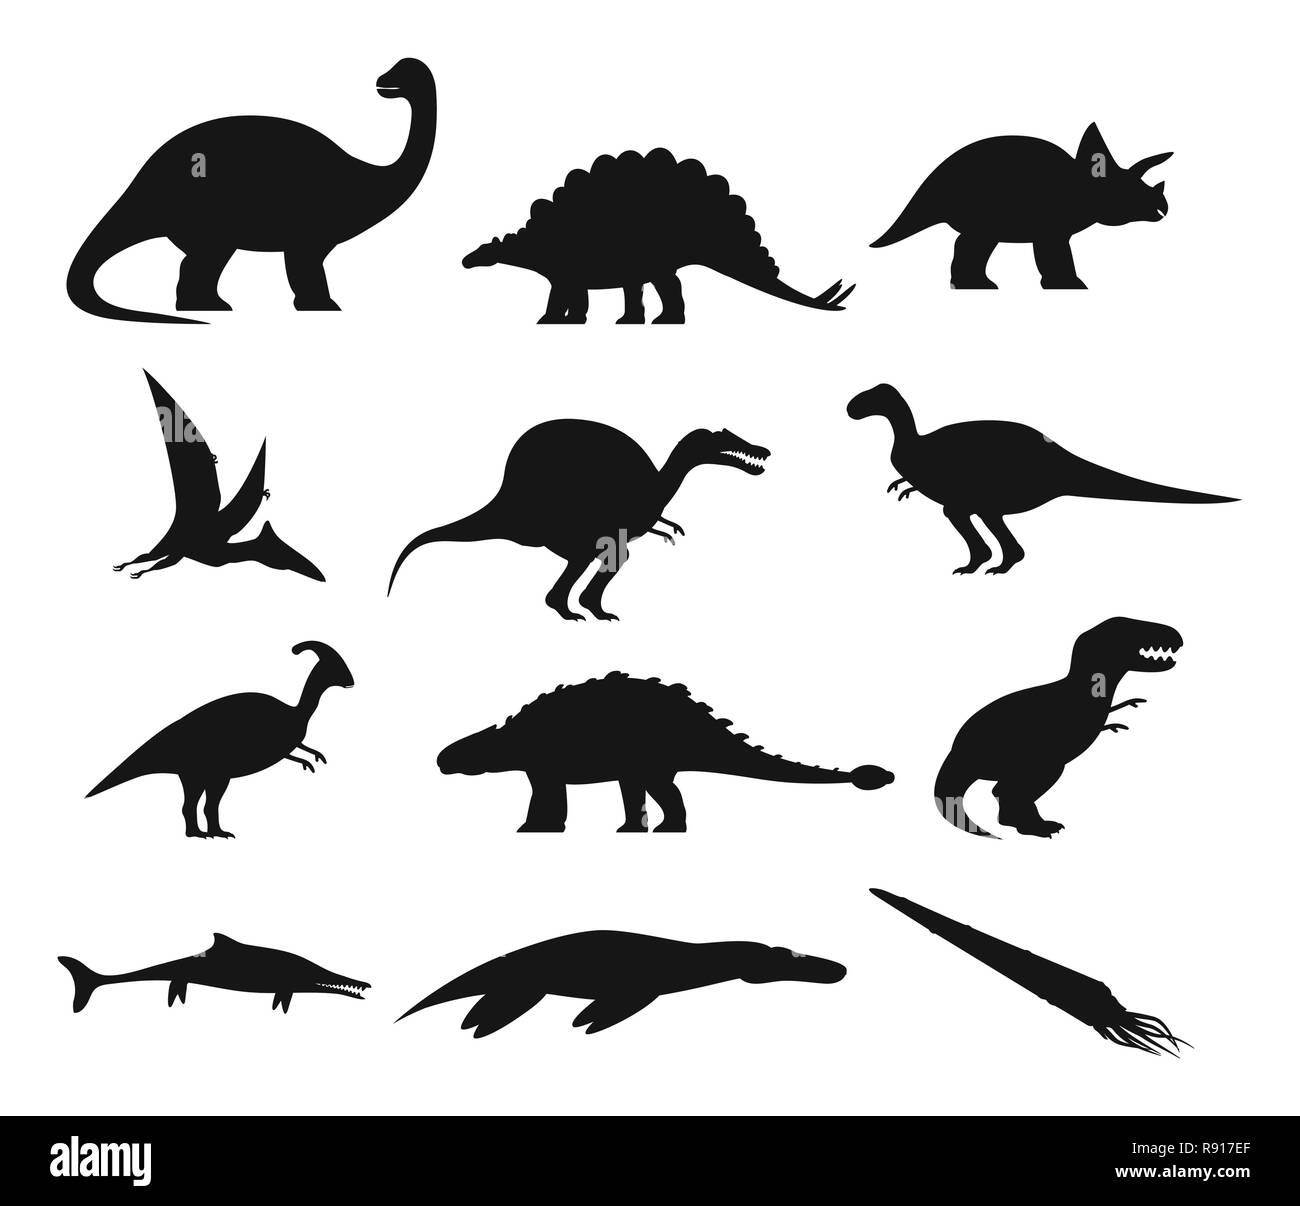 Contour or outline of ancient dinosaurus or dino - Stock Image